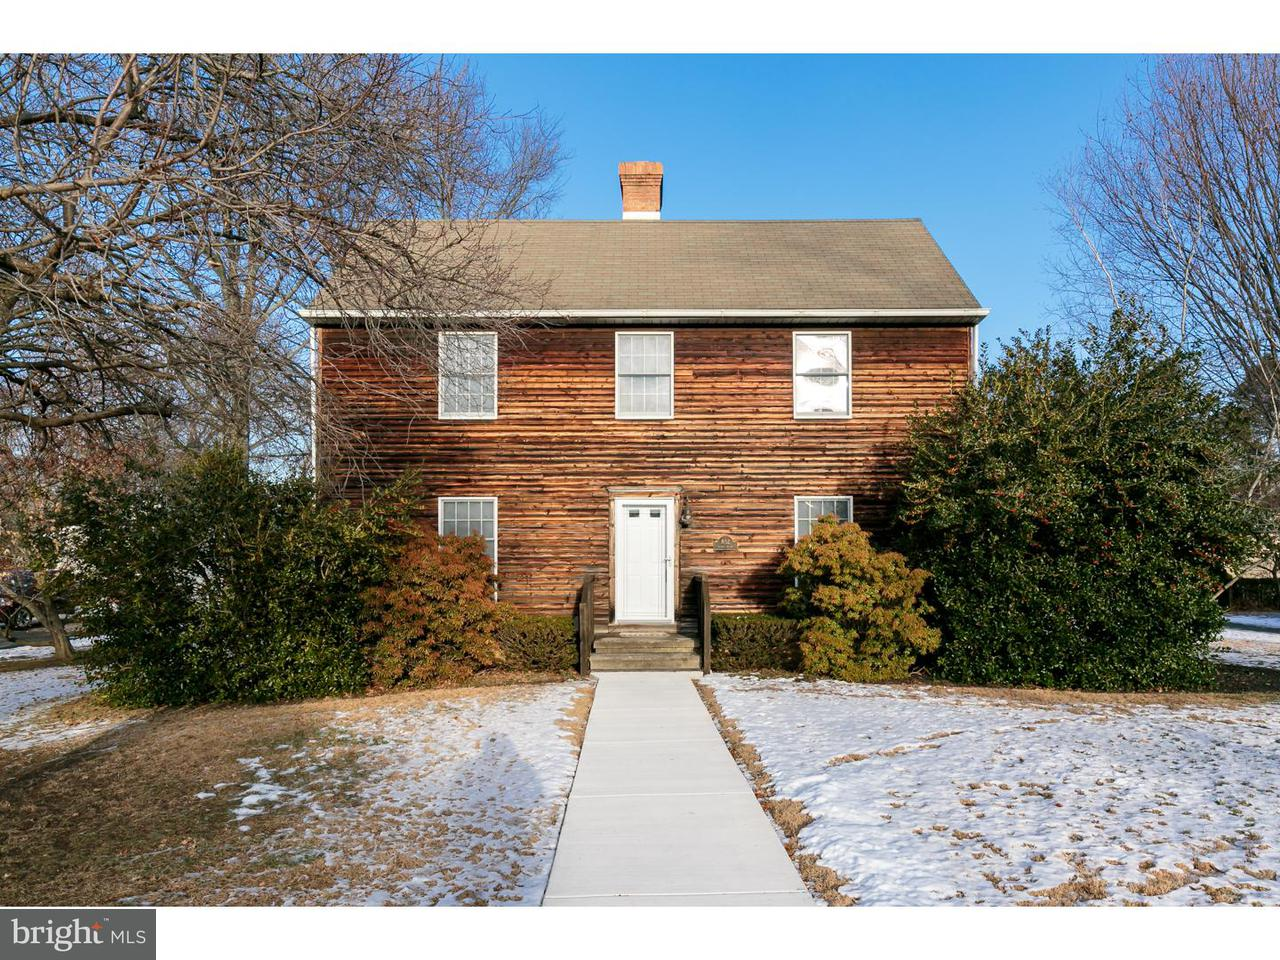 Single Family Home for Sale at 852 STOKES Avenue Beverly, New Jersey 08010 United States